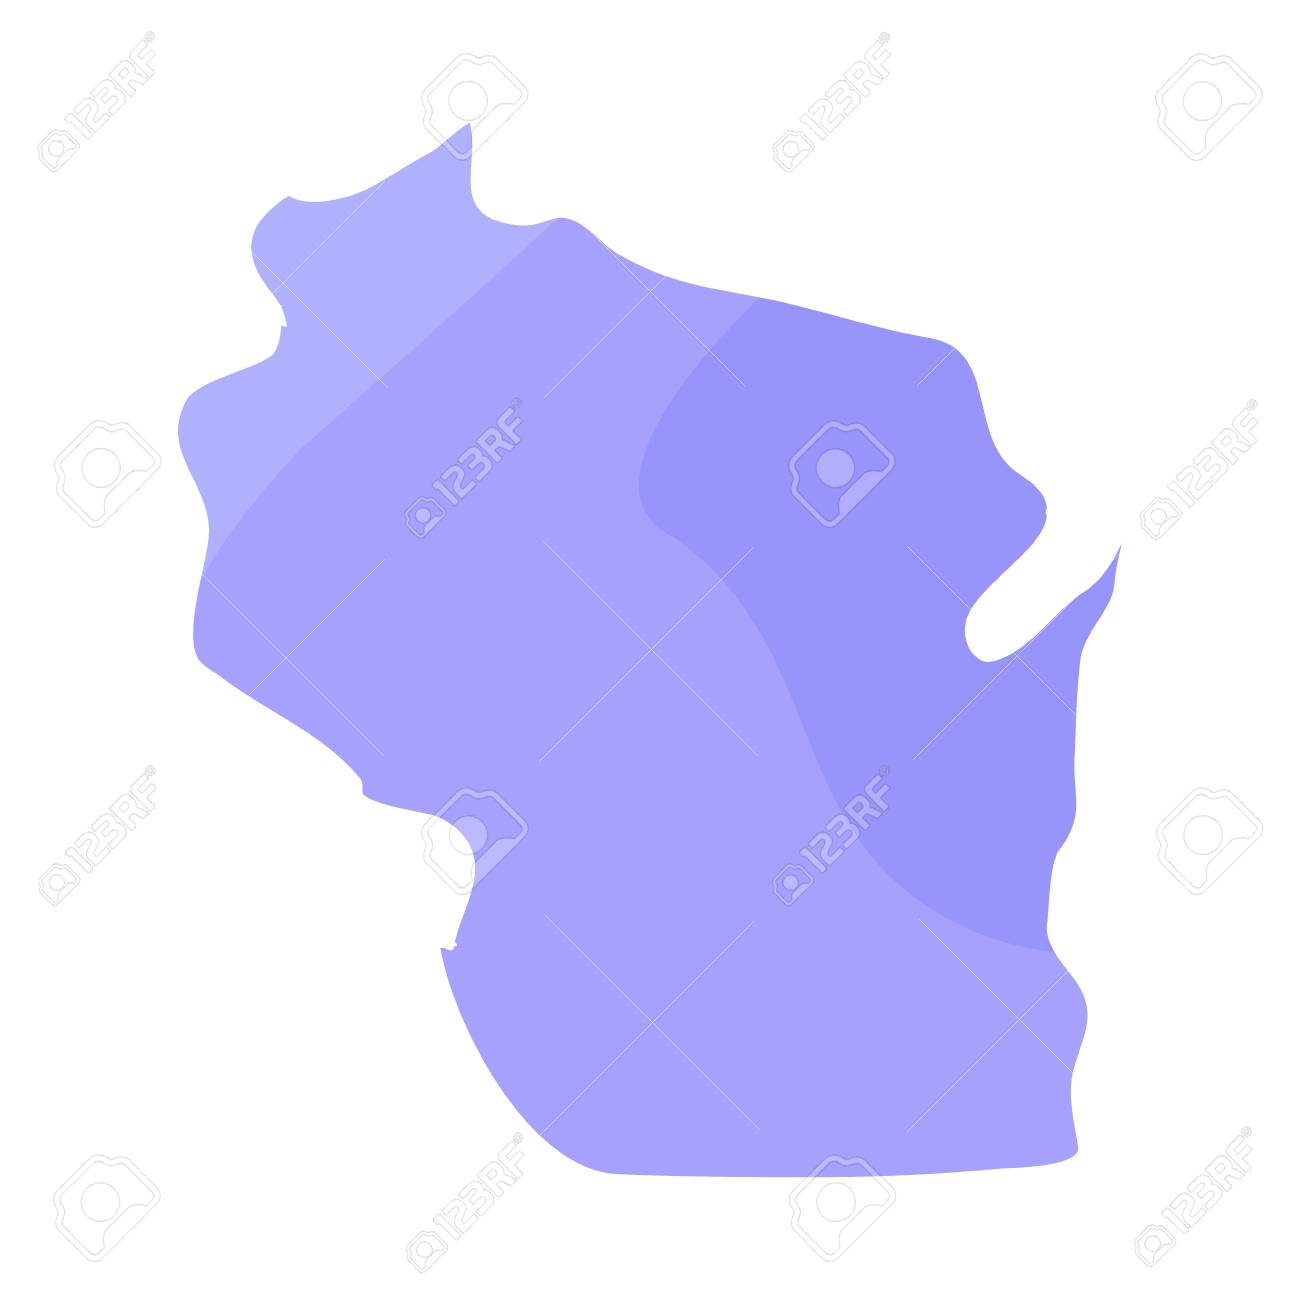 Political Map Of The State Of Wisconsin Vector Illustration Royalty